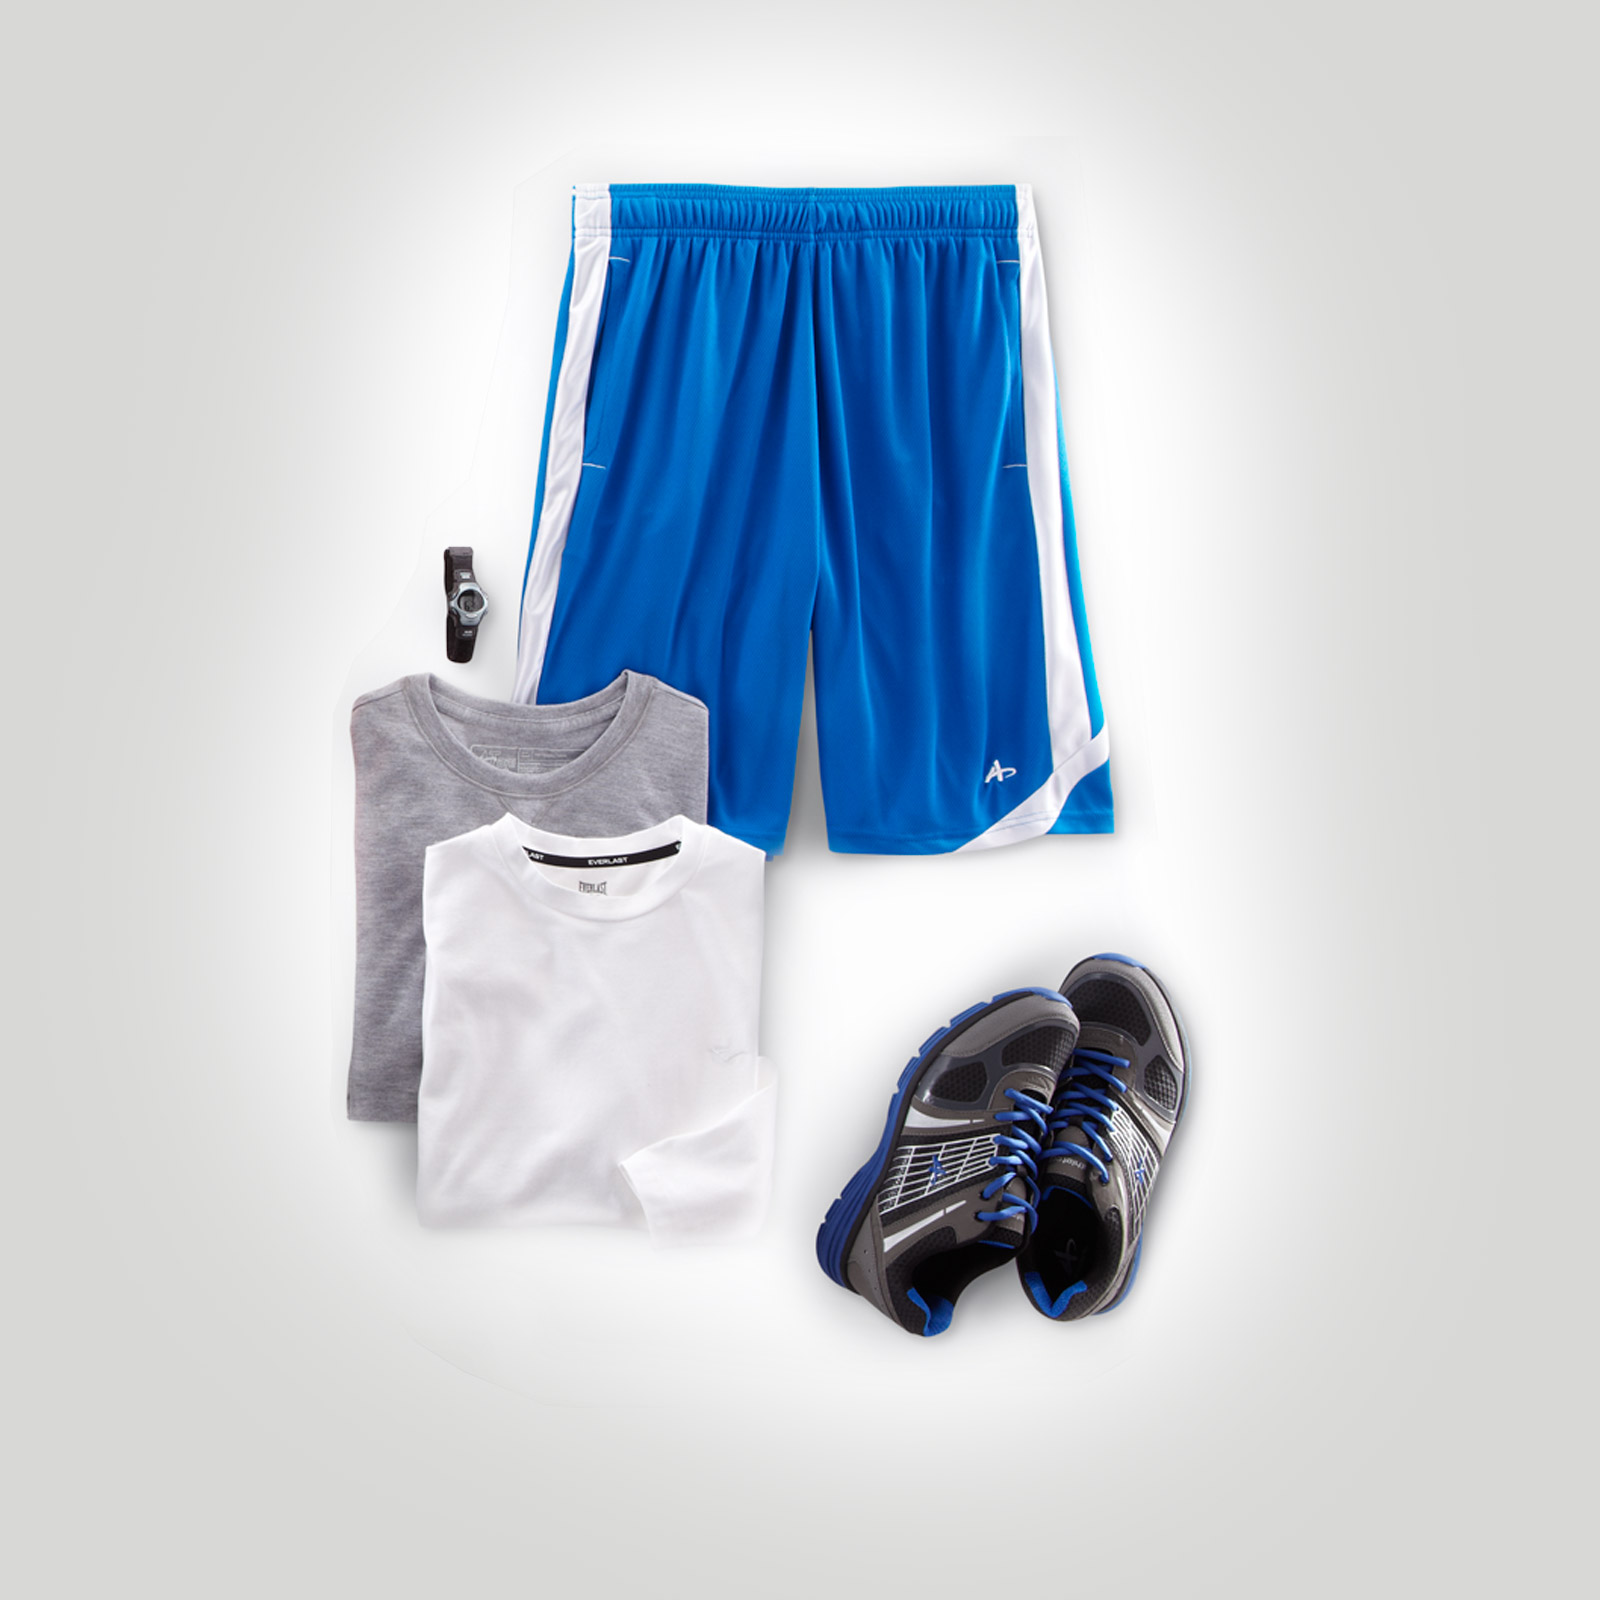 Fast Break Outfit at Kmart.com